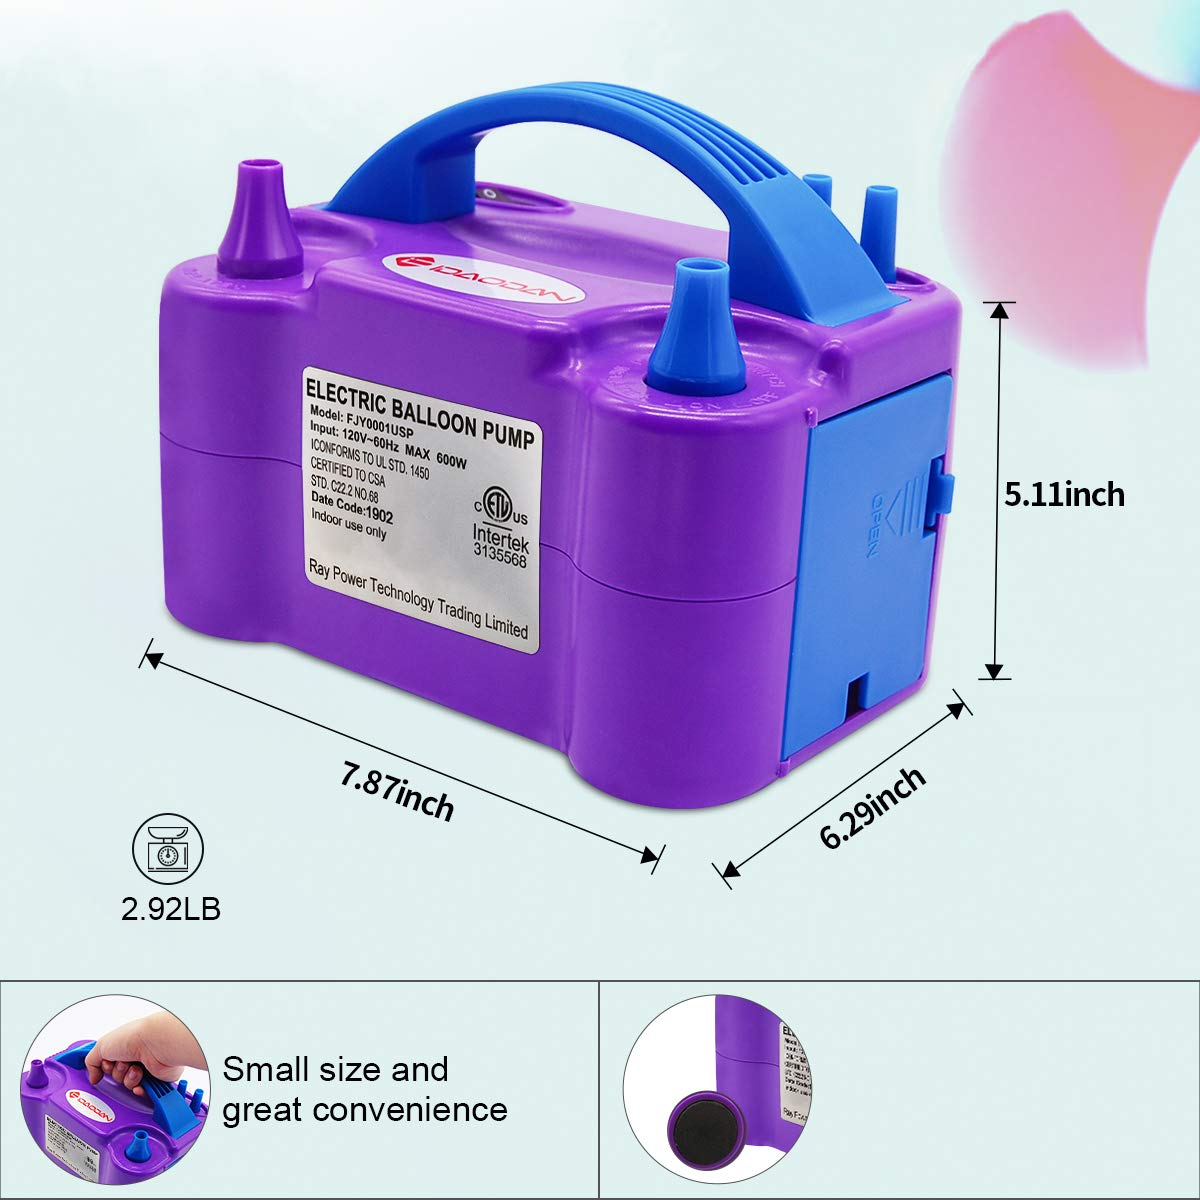 Portable Dual Nozzle Electric Balloon Inflator//Blower for Party Decoration 110V 600W Purple IDAODAN Electric Air Balloon Pump